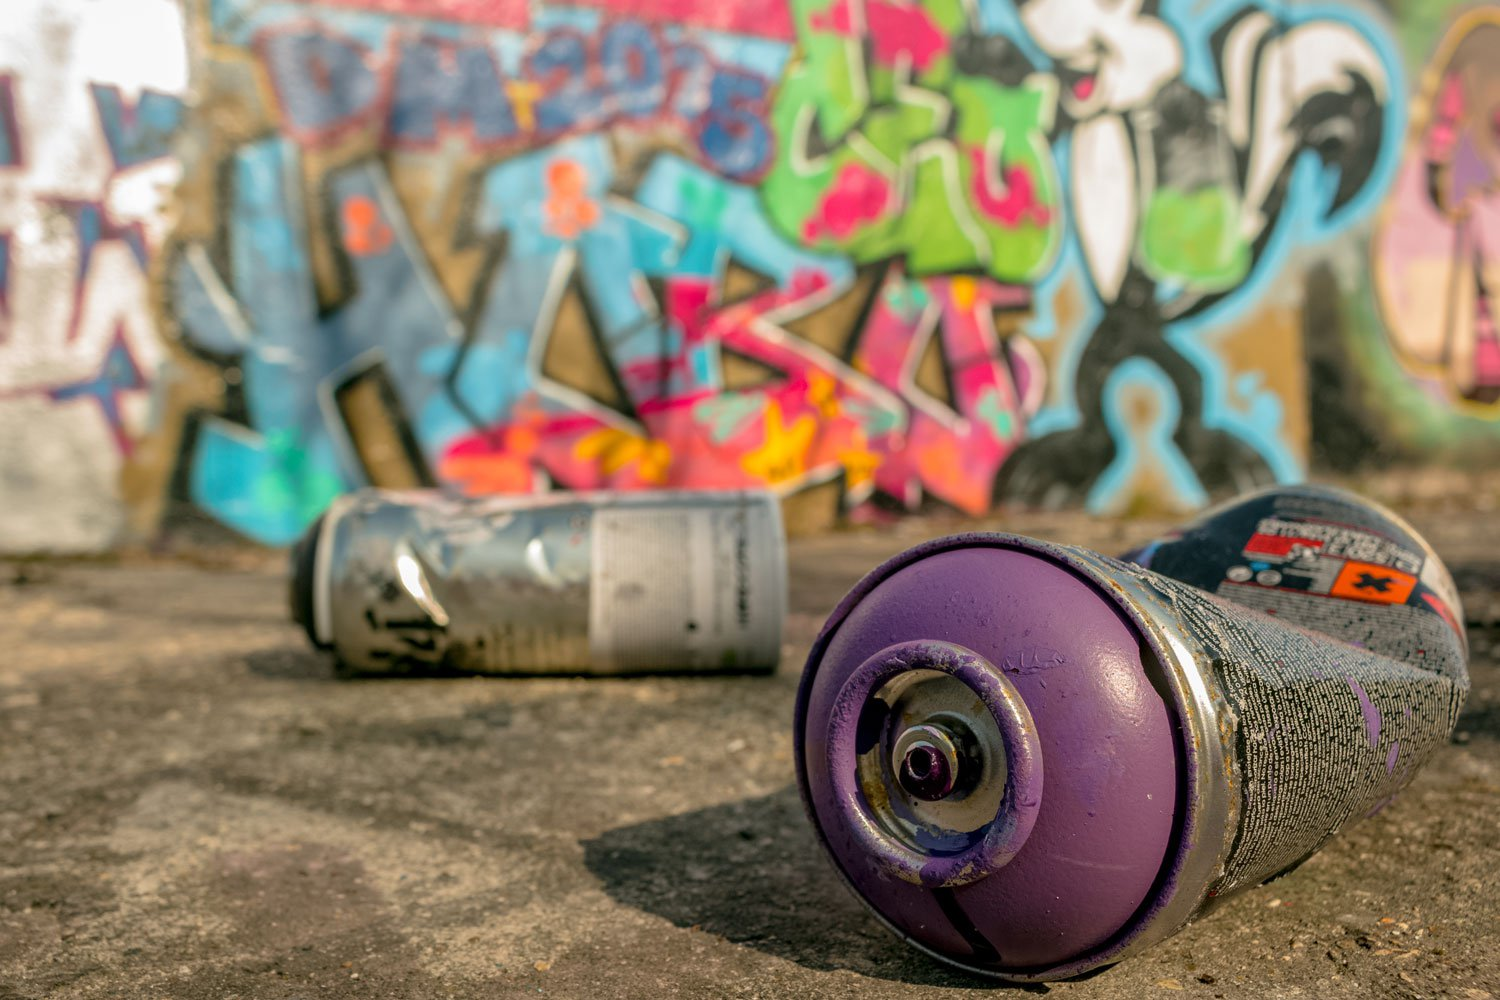 Discarded spray pain cans in front of graffiti